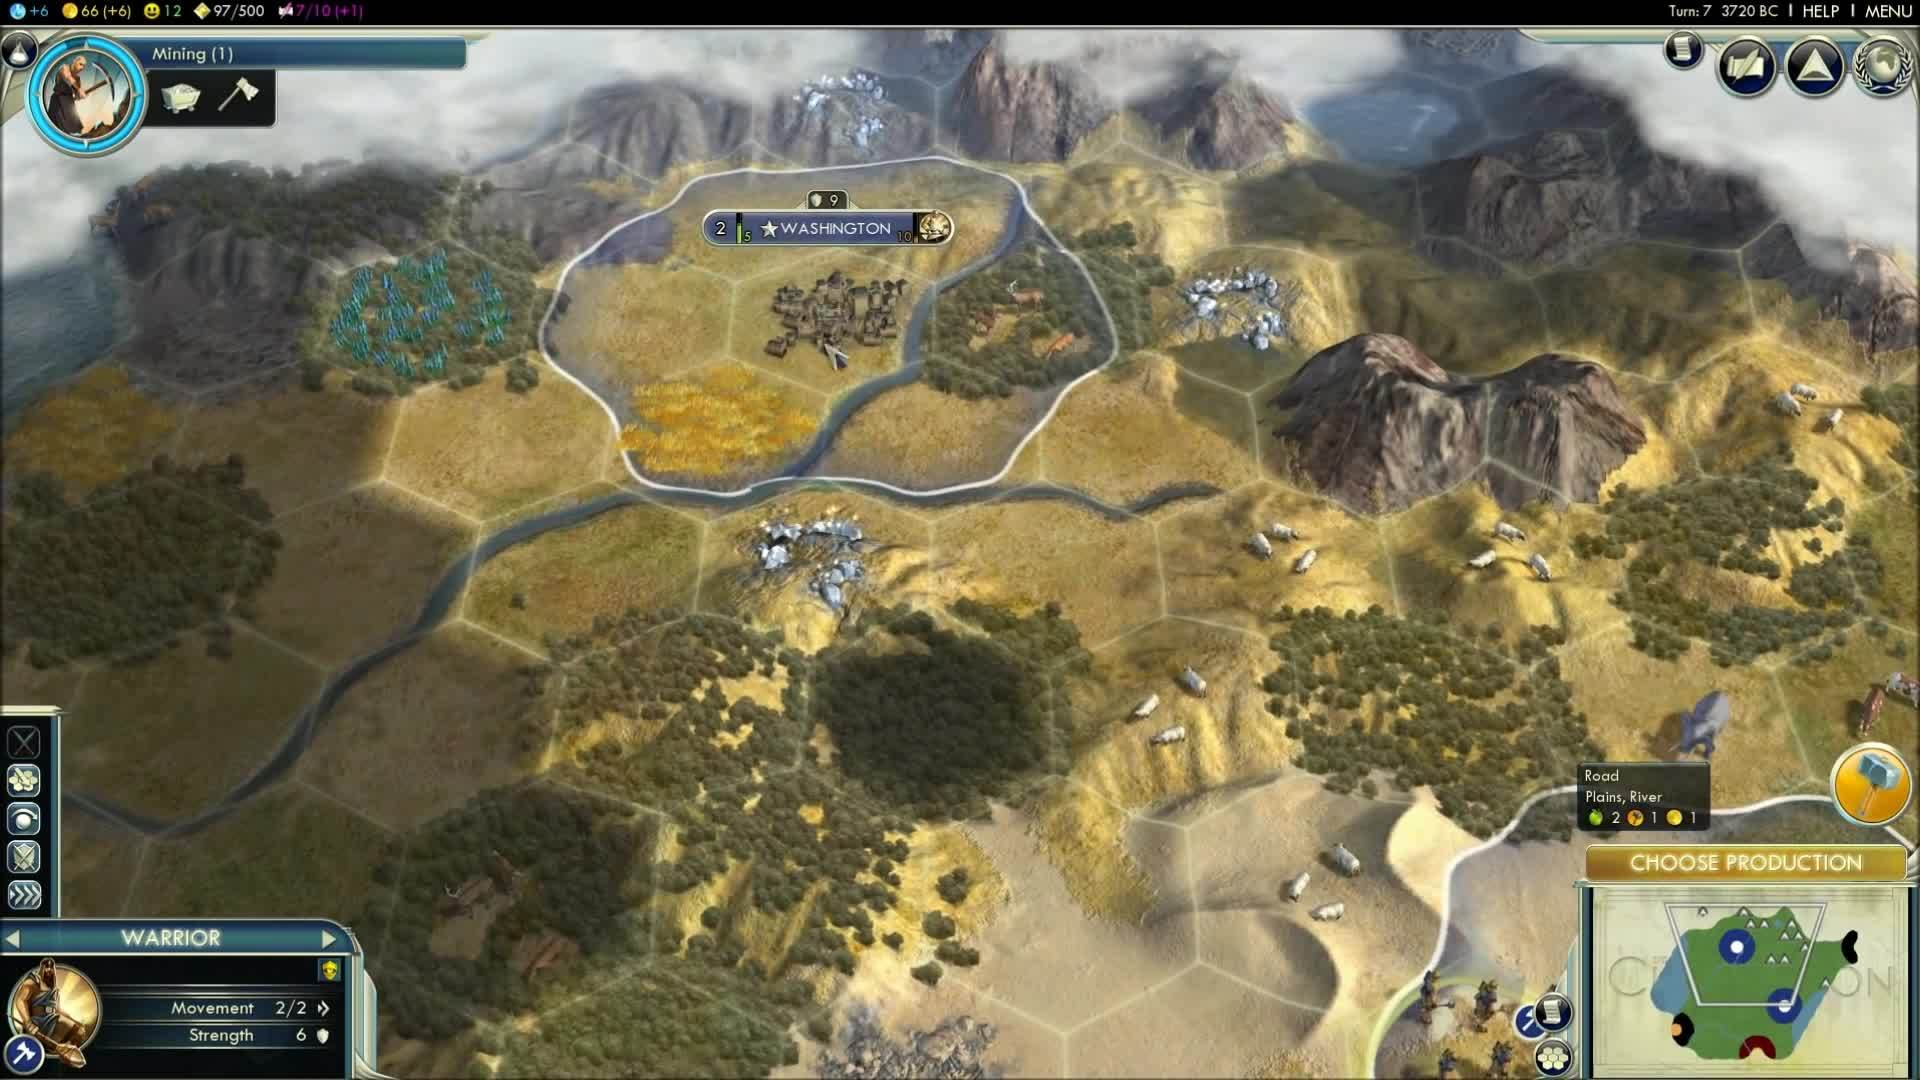 Civilization Video Game Gifs Search | Search & Share on Homdor